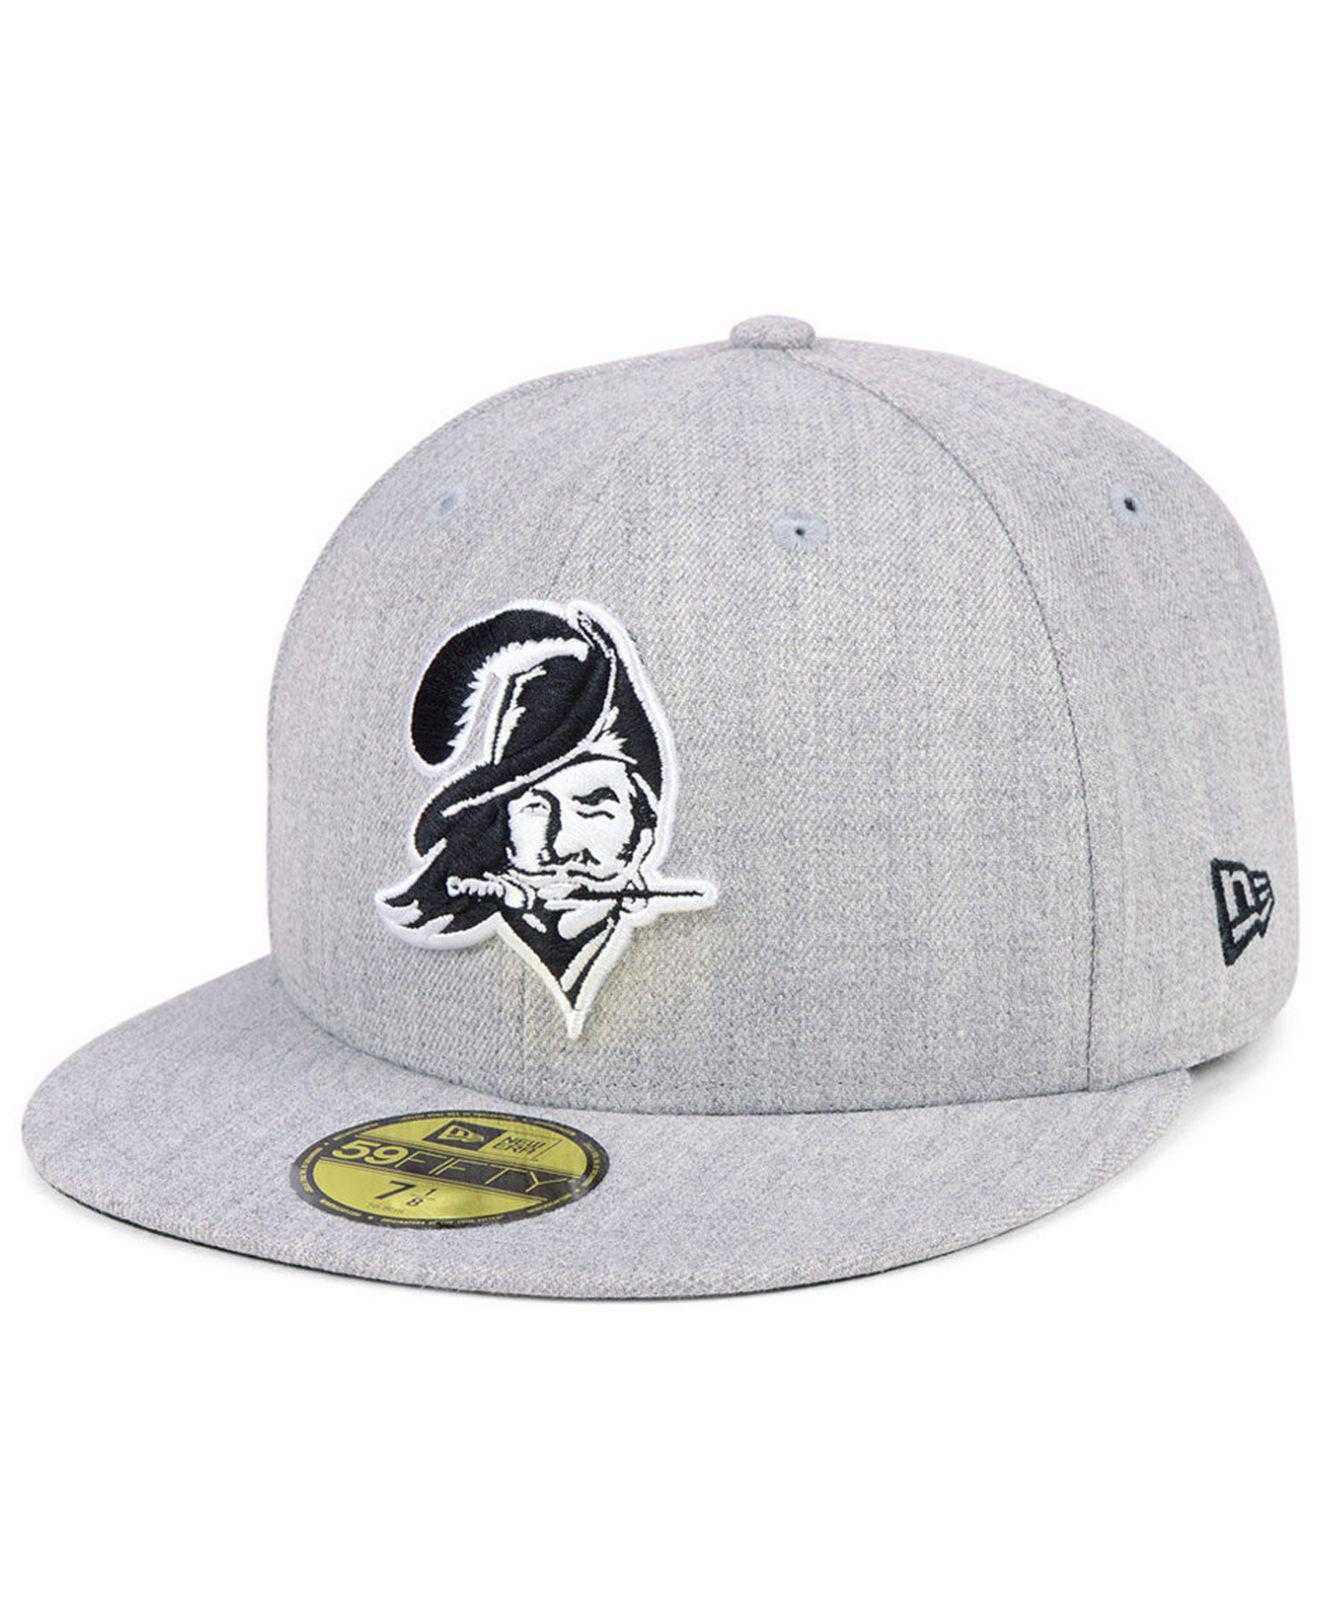 a2ddd6407a2128 ... coupon ktz tampa bay buccaneers heather black white 59fifty fitted cap  for men lyst. view